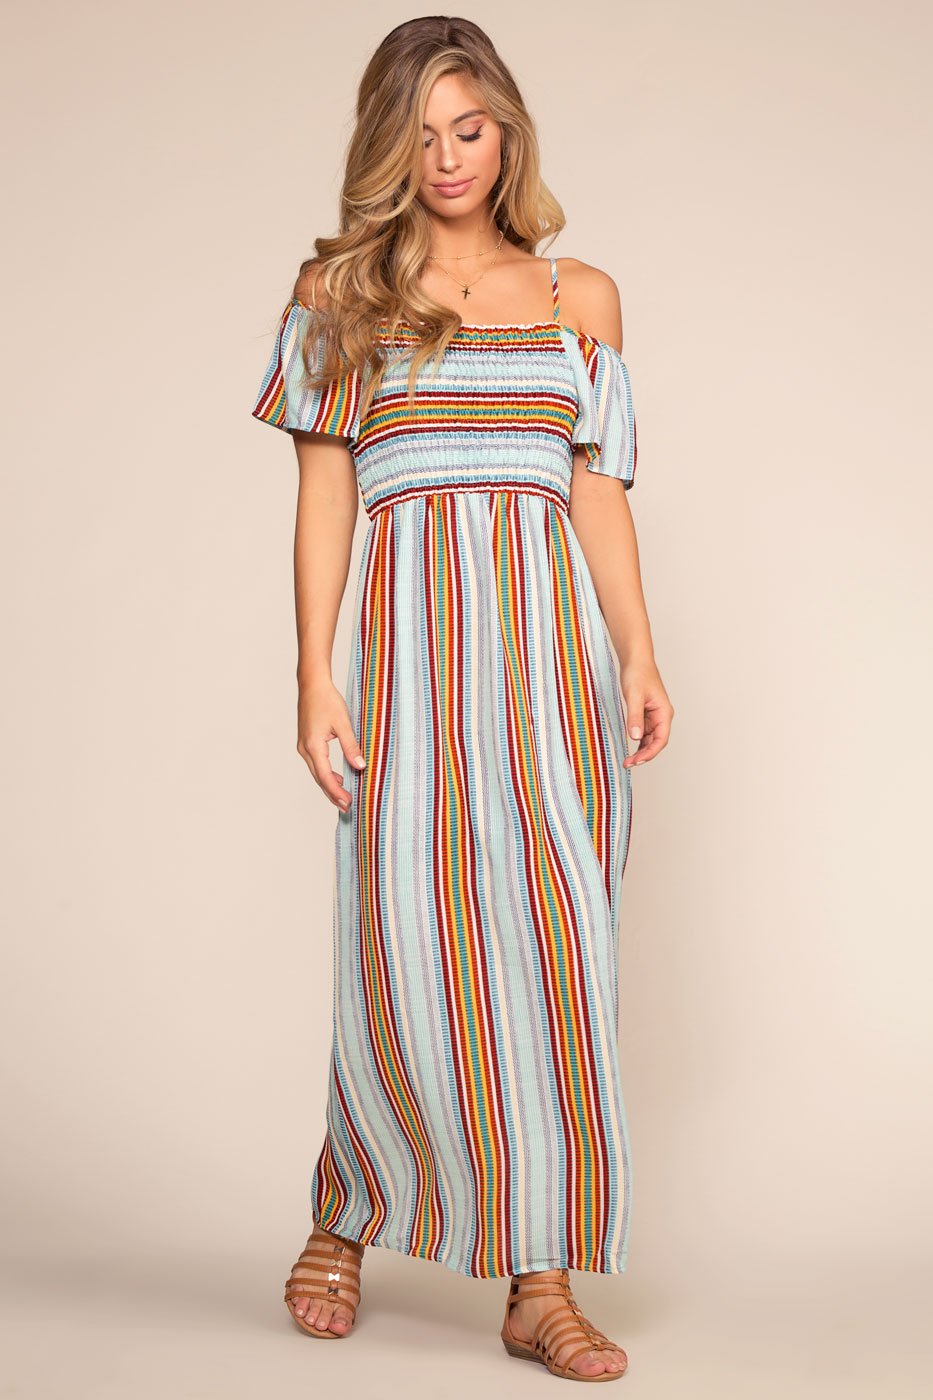 Dresses - Daydreamer Maxi Dress